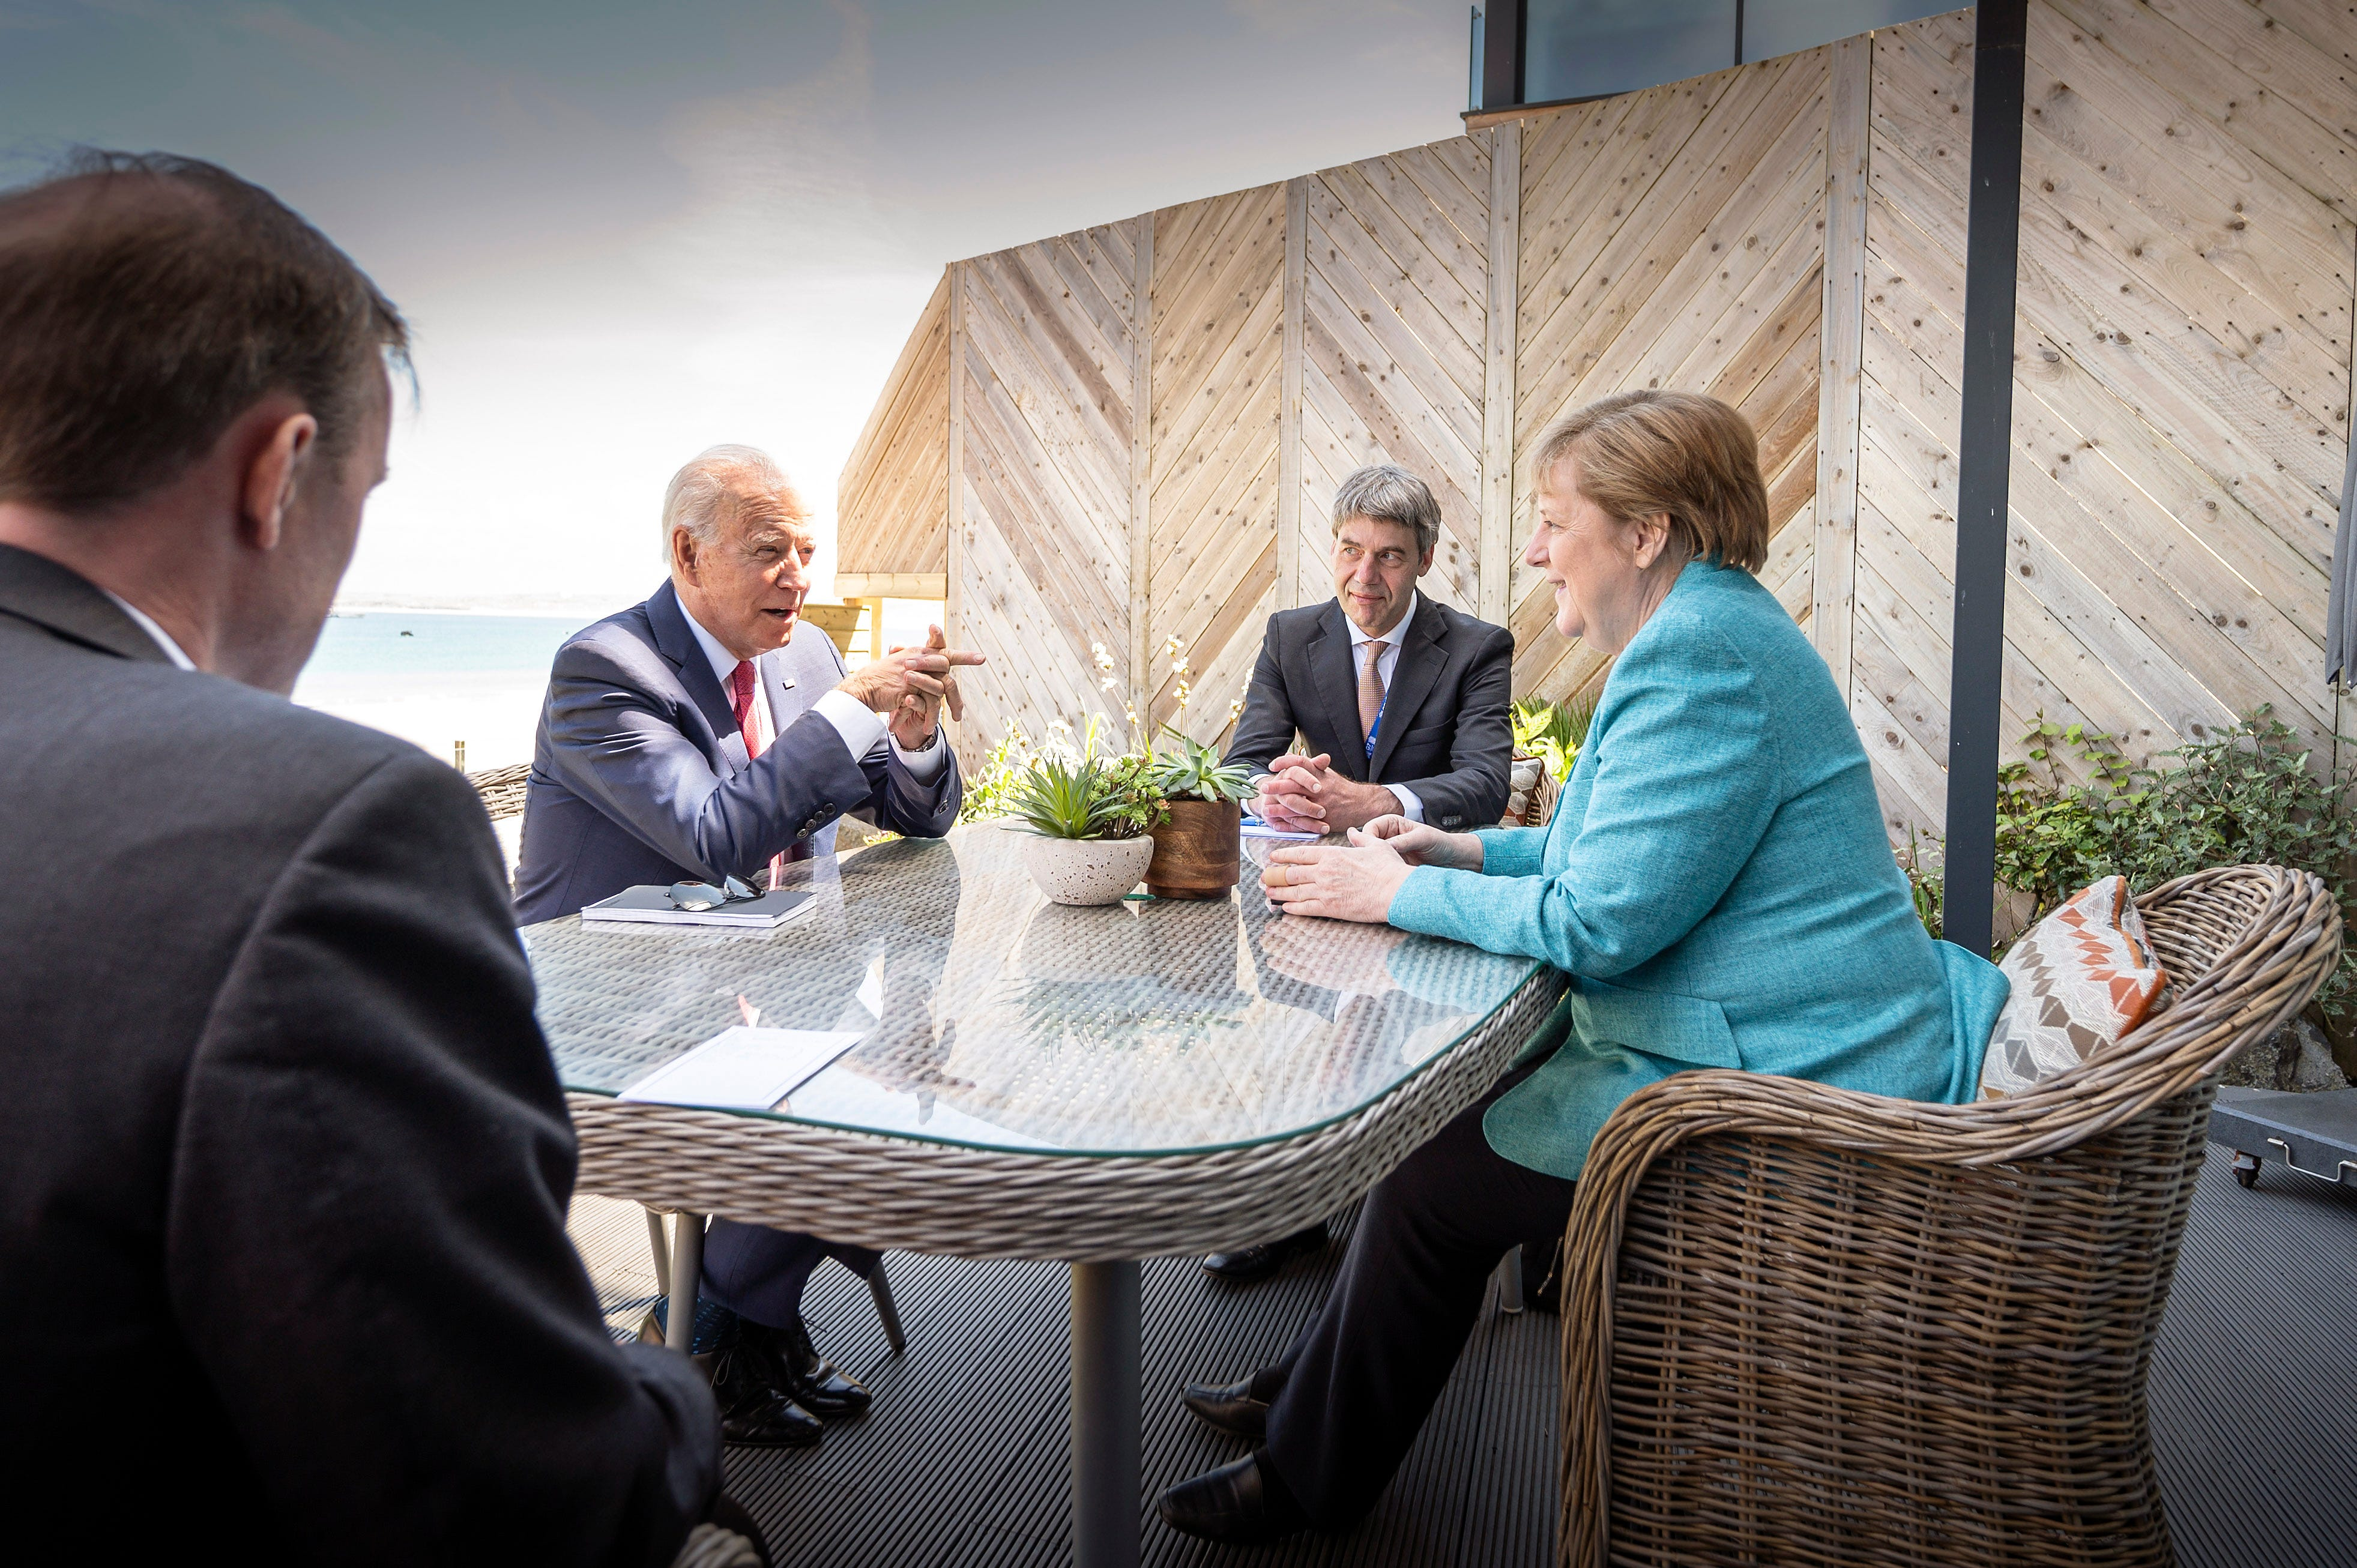 COVID s  roots,  China, protests at sea, beach BBQ: Five takeaways from Day 2 of the G-7 summit